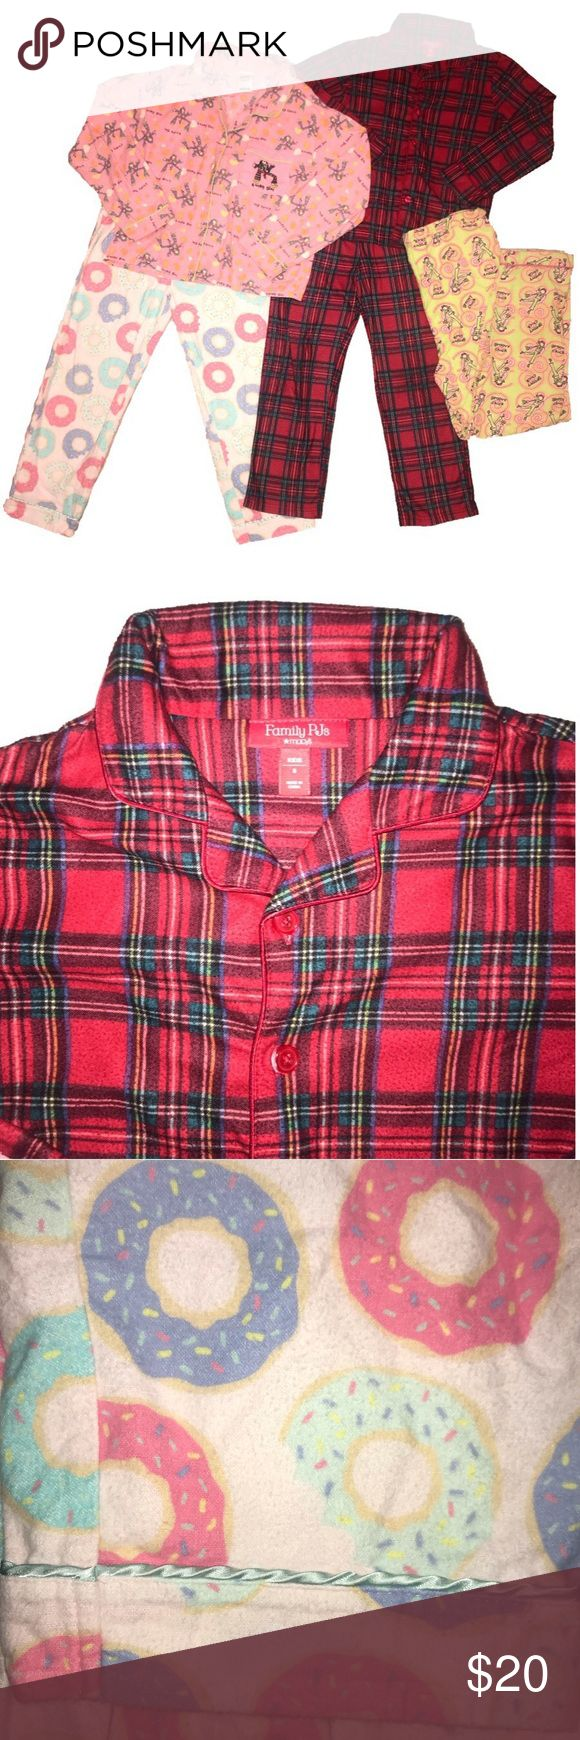 Flannel Pajamas Lot! SIX pieces sizes 810 years Flannel